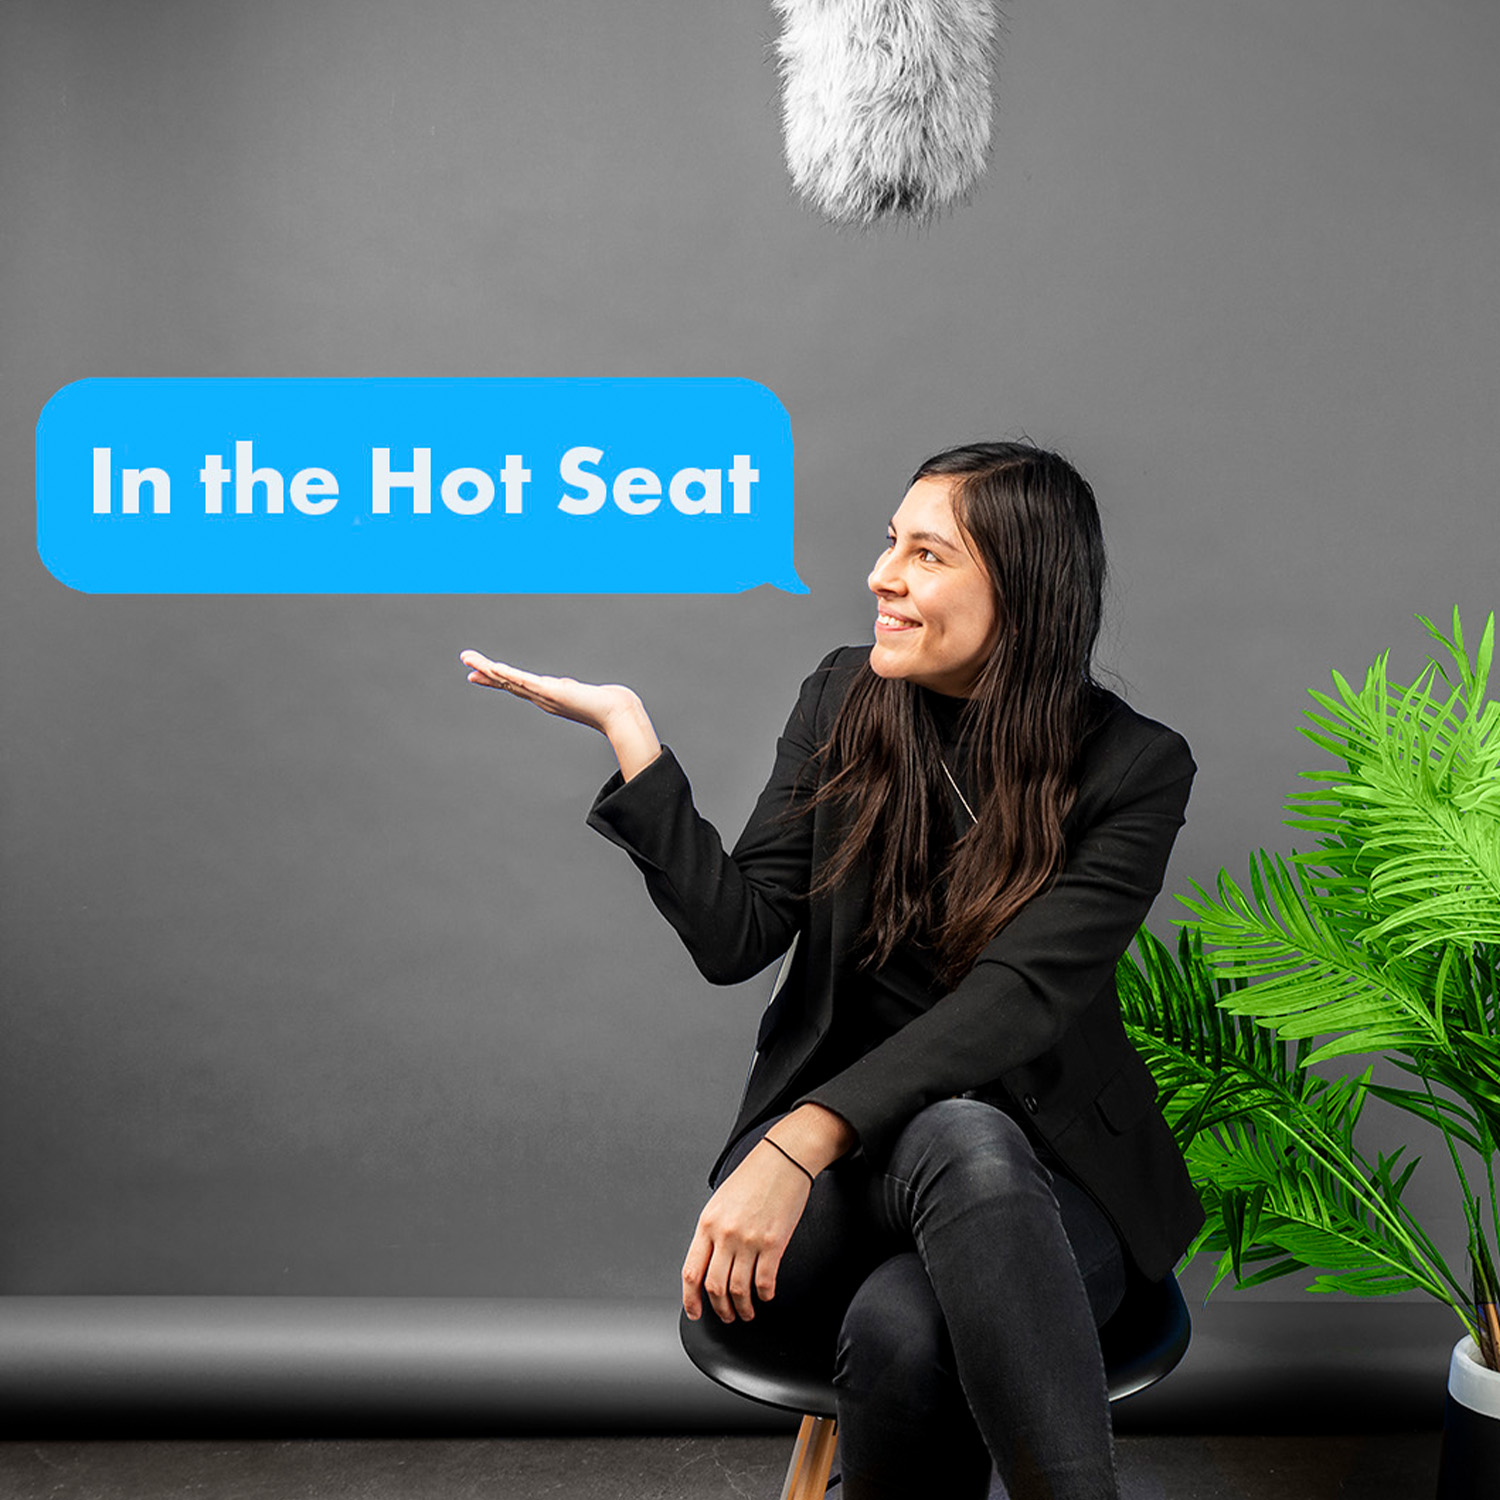 IN THE HOT SEAT - Catch up with the team on latest projects and office secrets.